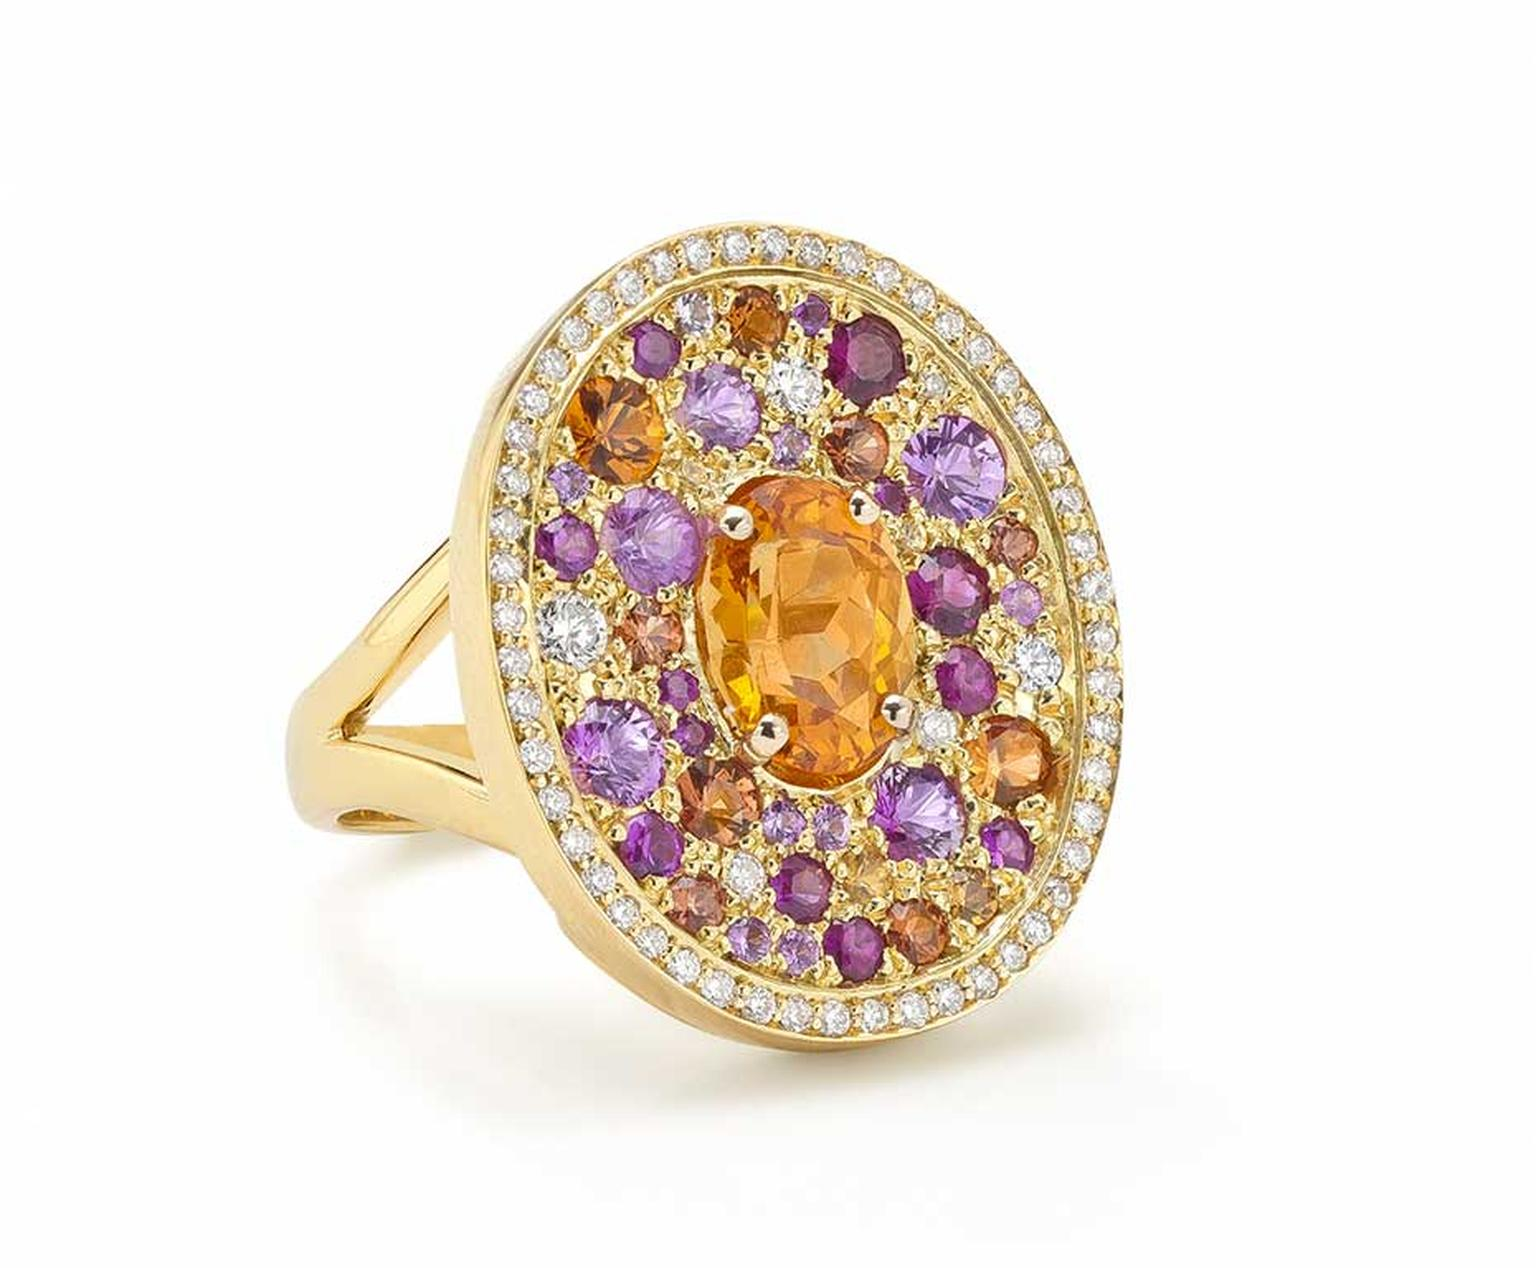 Robinson Pelham white gold Volcano Asteroid ring featuring a central oval mandarin garnet surrounded by a pavé of diamonds, rubies and yellow, orange and pink sapphires.